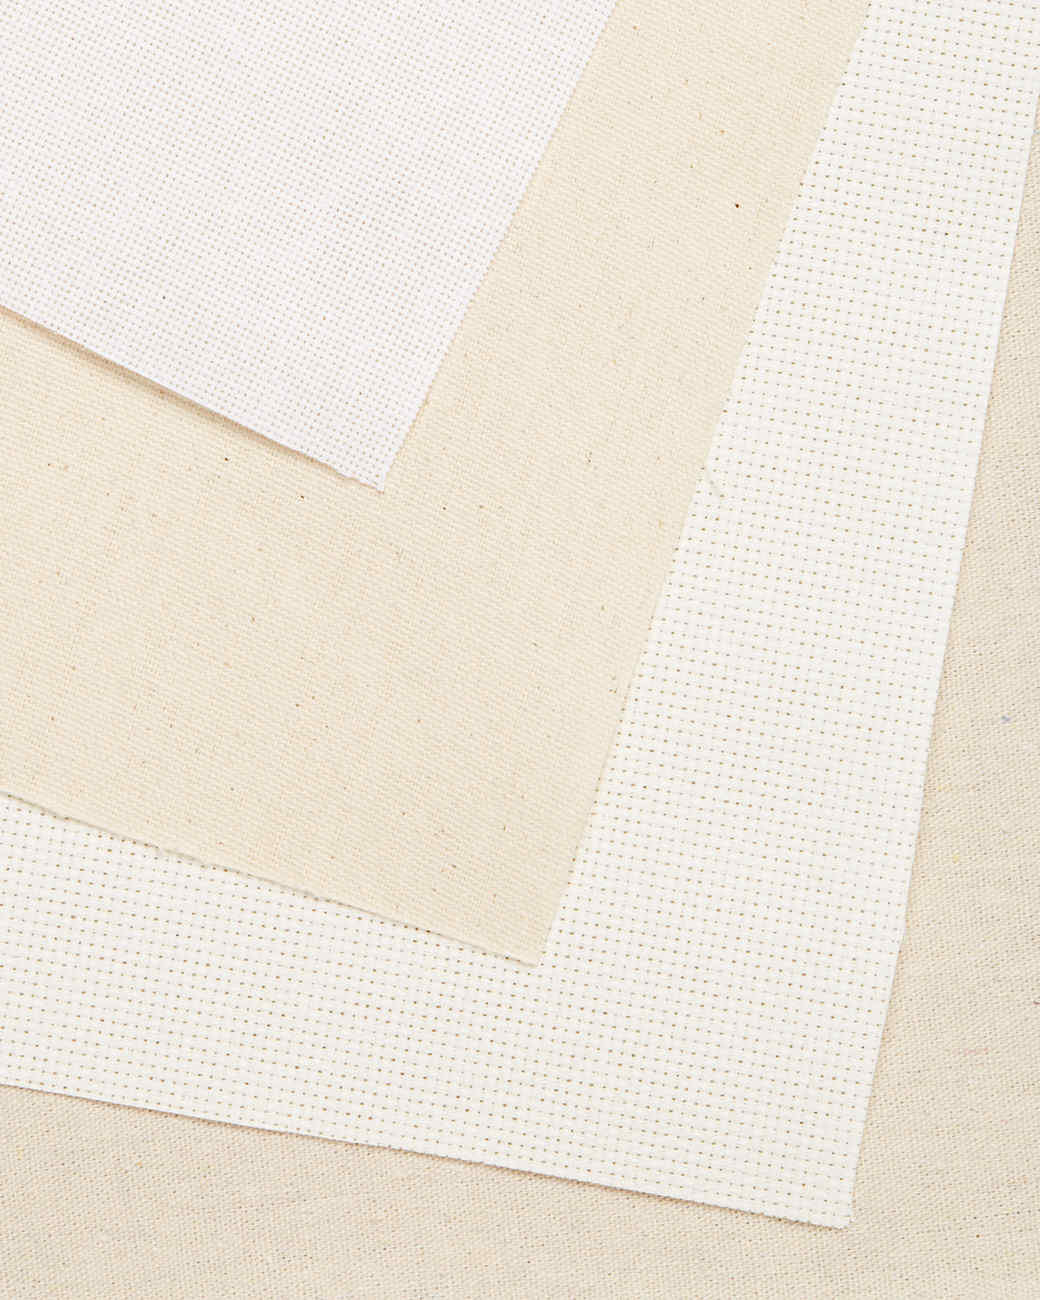 white and tan embroidery fabric